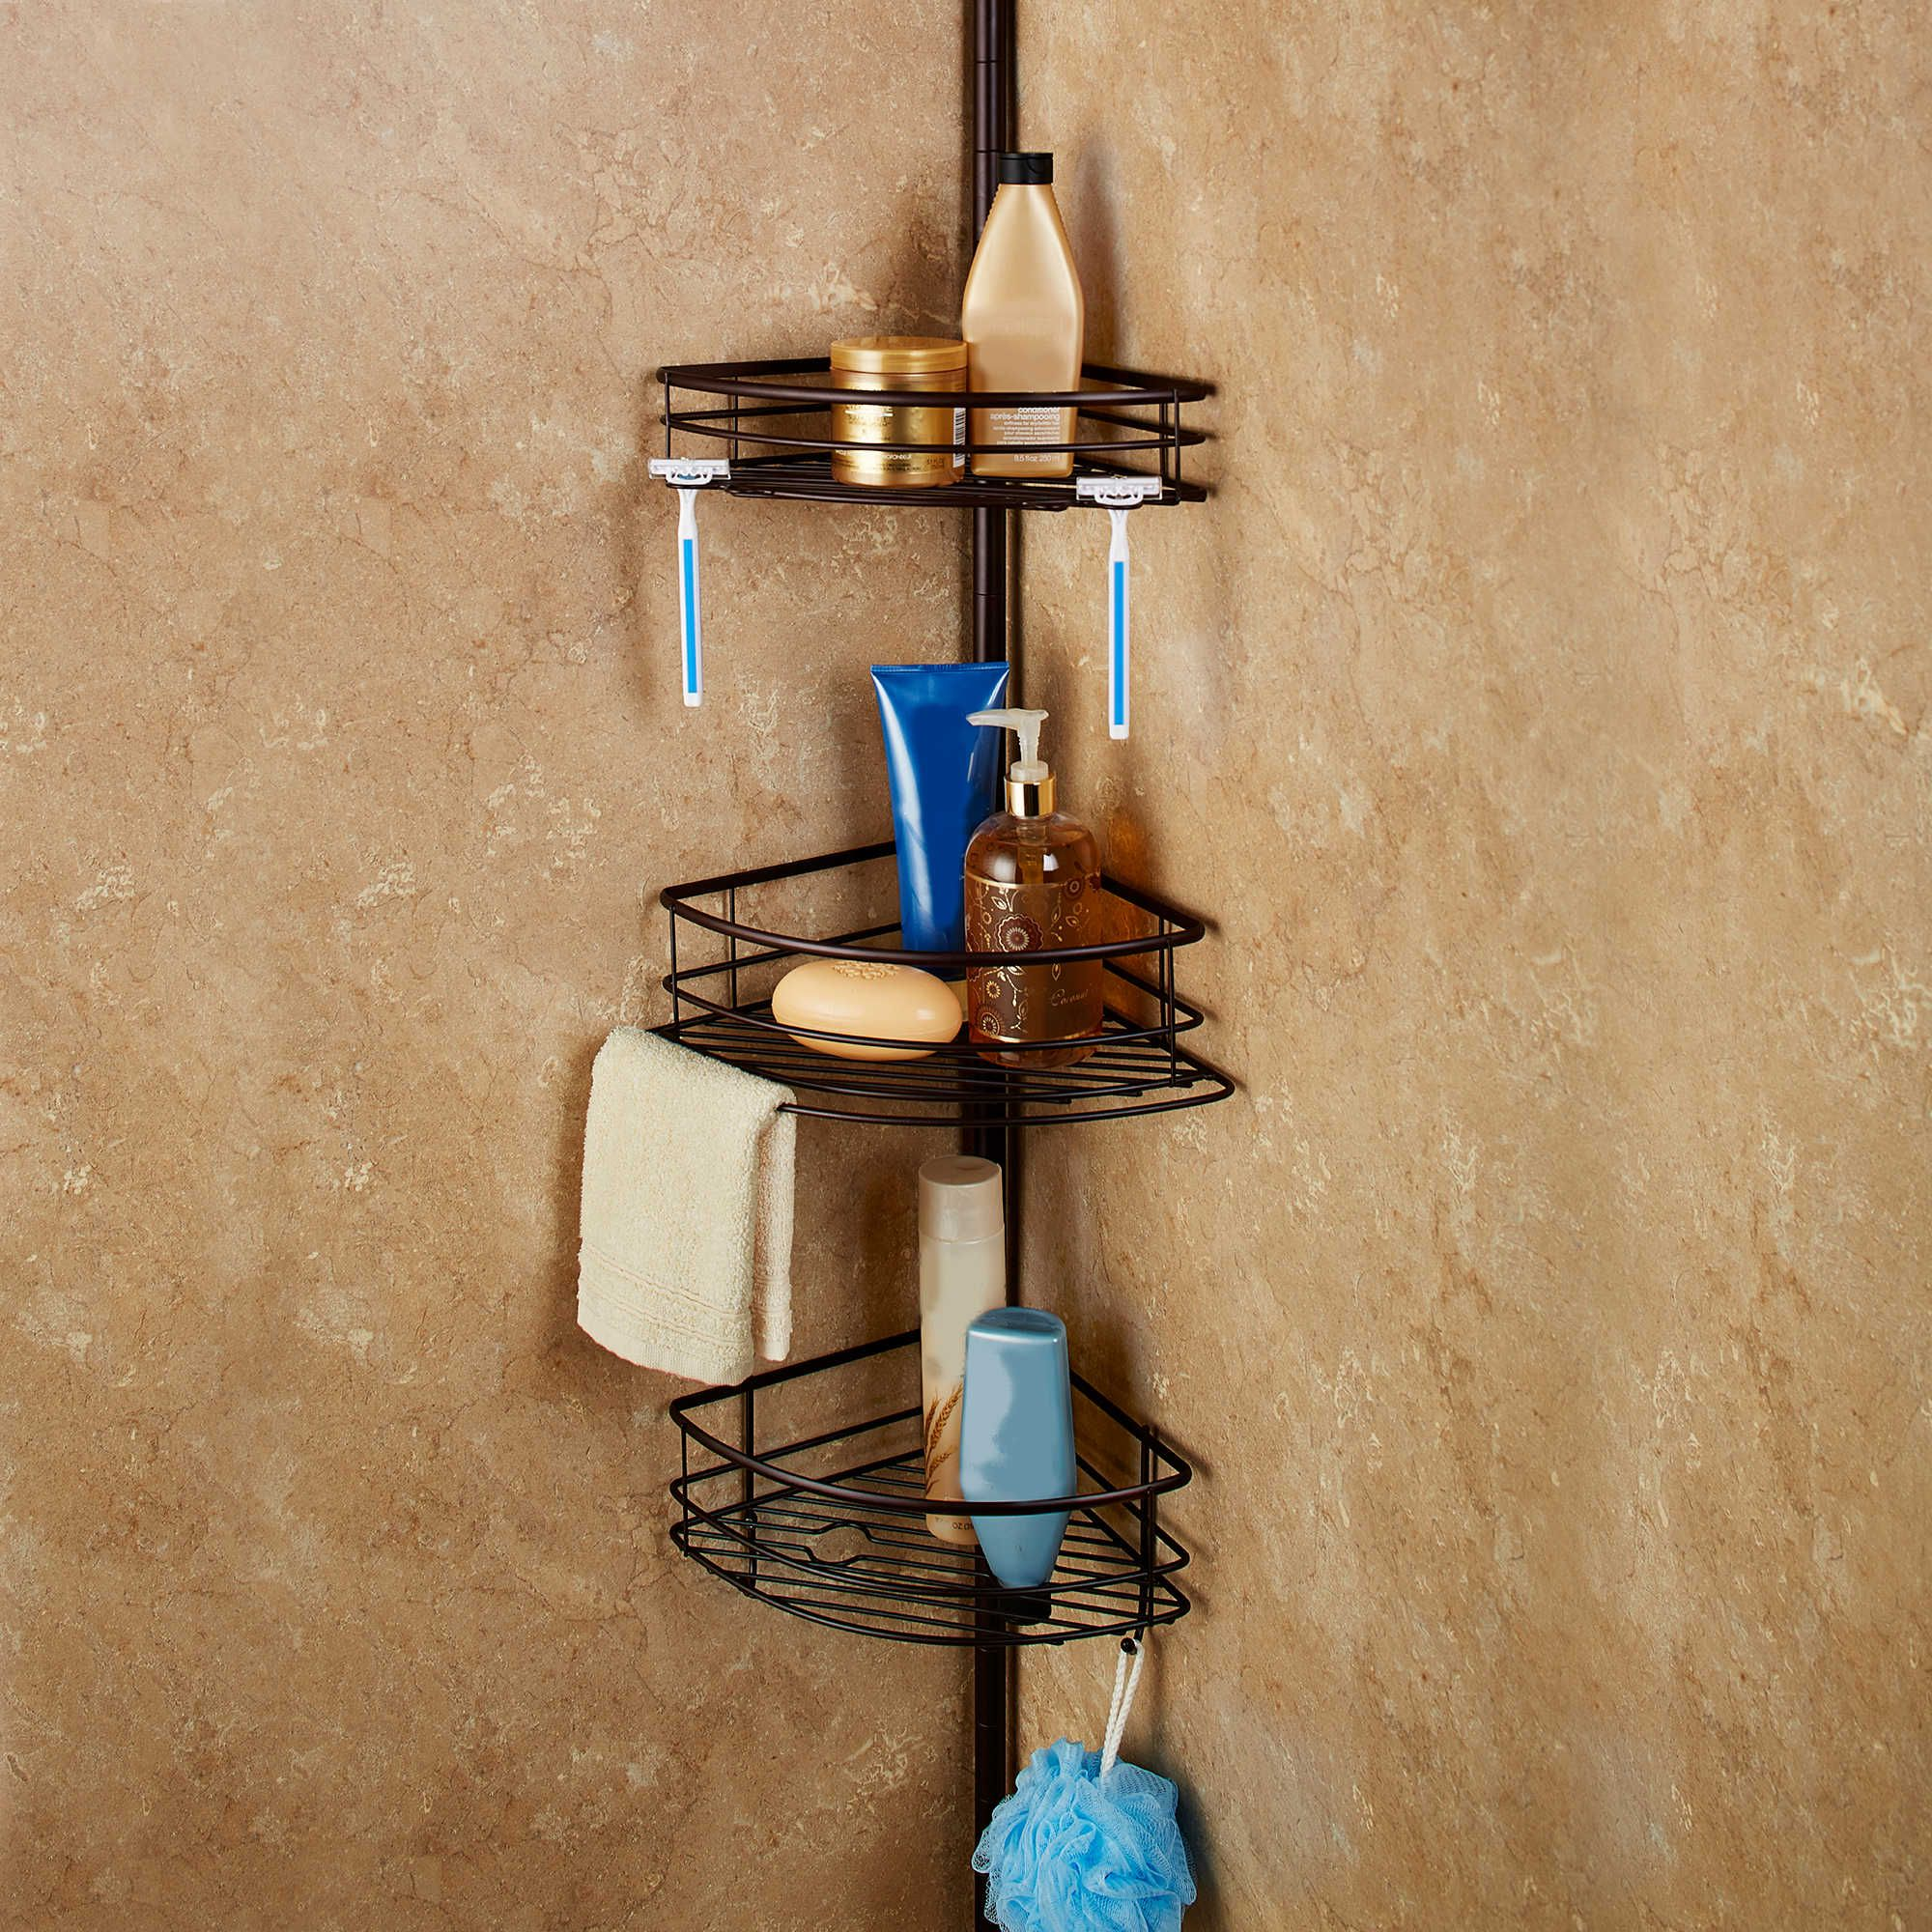 Spa Creations™ Oversized 3-Tier Pole Caddy with Shelves in Matte ...